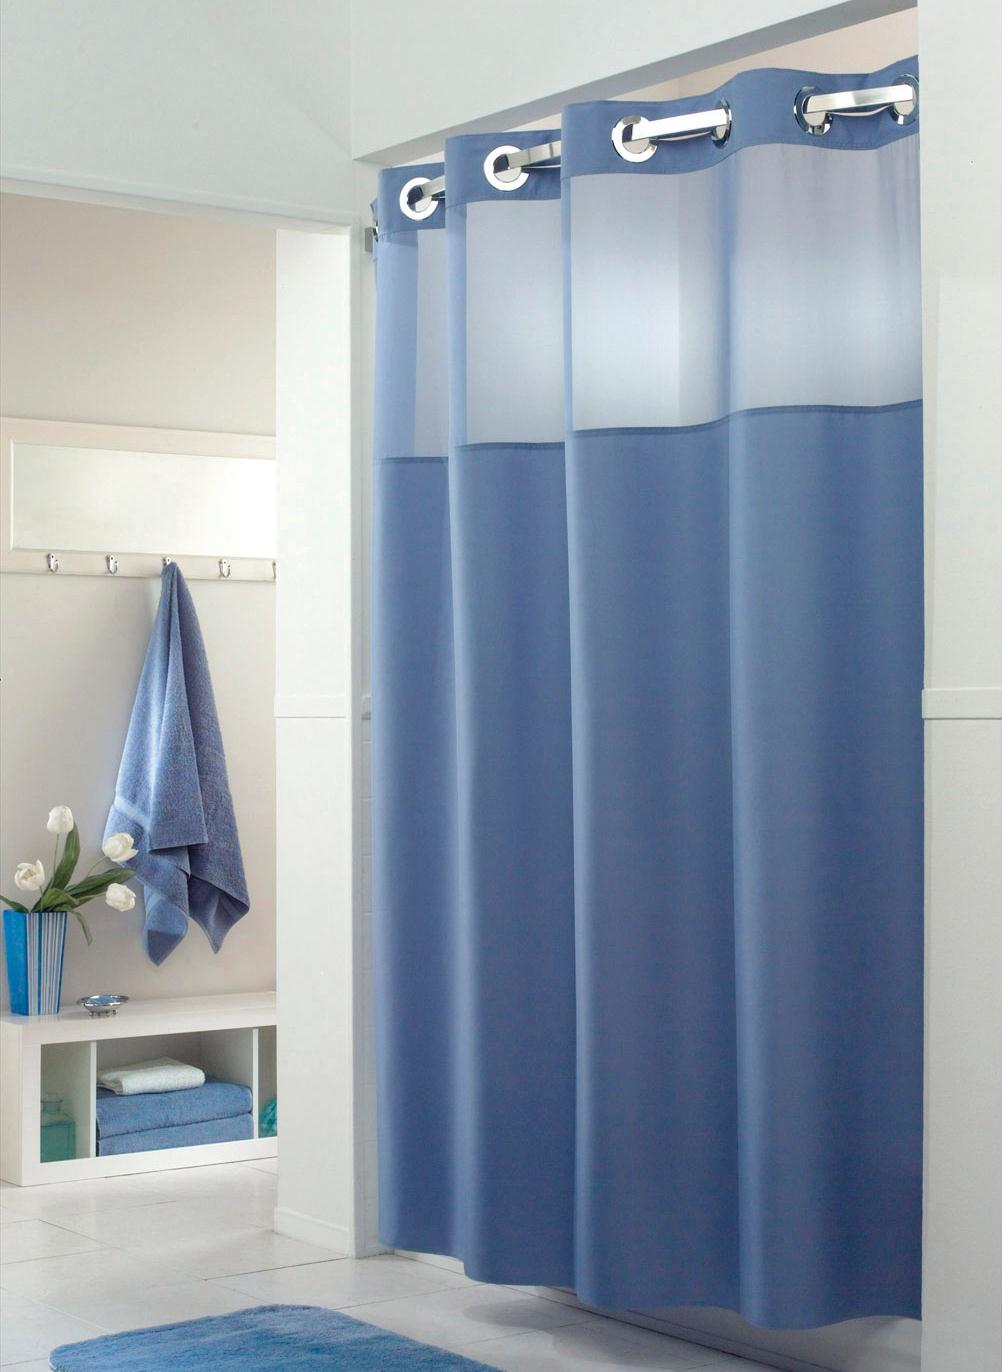 Attractive Raindance Hookless Shower Curtain Collection